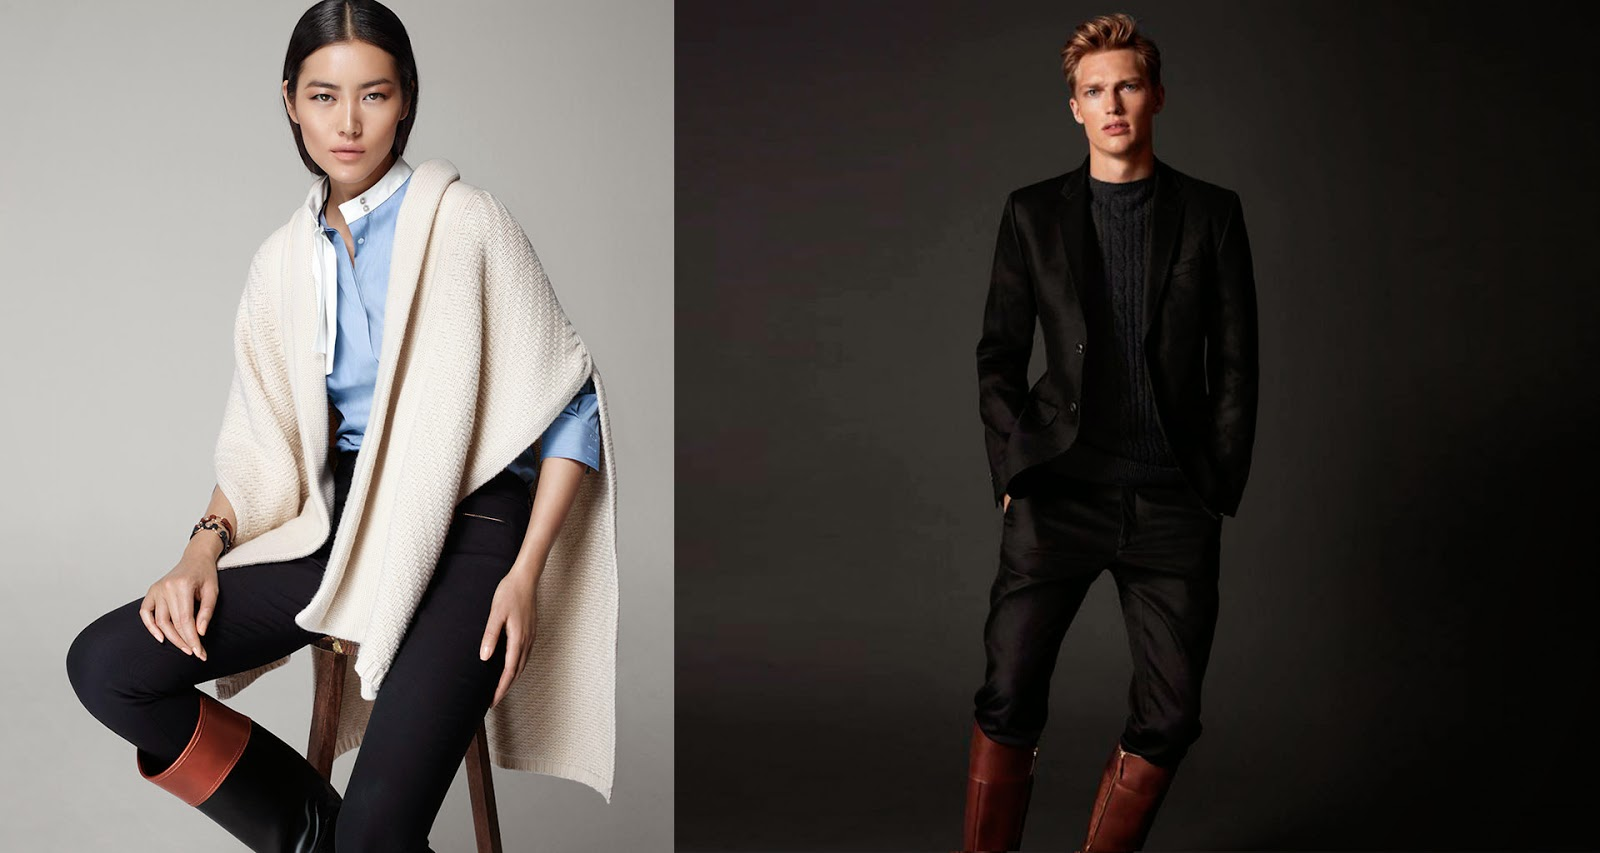 Forum on this topic: Massimo Dutti AW14 Equestrian Collection, massimo-dutti-aw14-equestrian-collection/